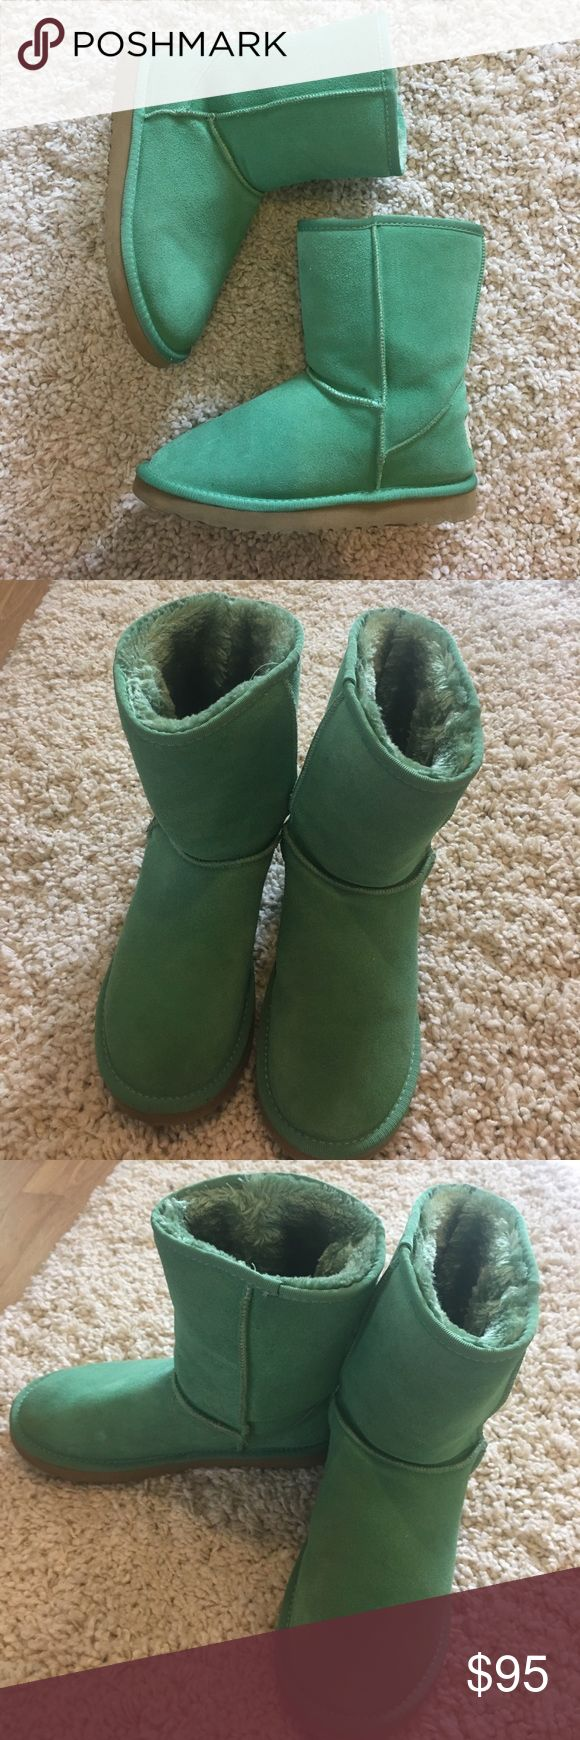 PERFECT CONDITION Classic Short Uggs Once worn pair of classic Short Uggs. Perfect condition, zero imperfections. UGG Shoes Winter & Rain Boots